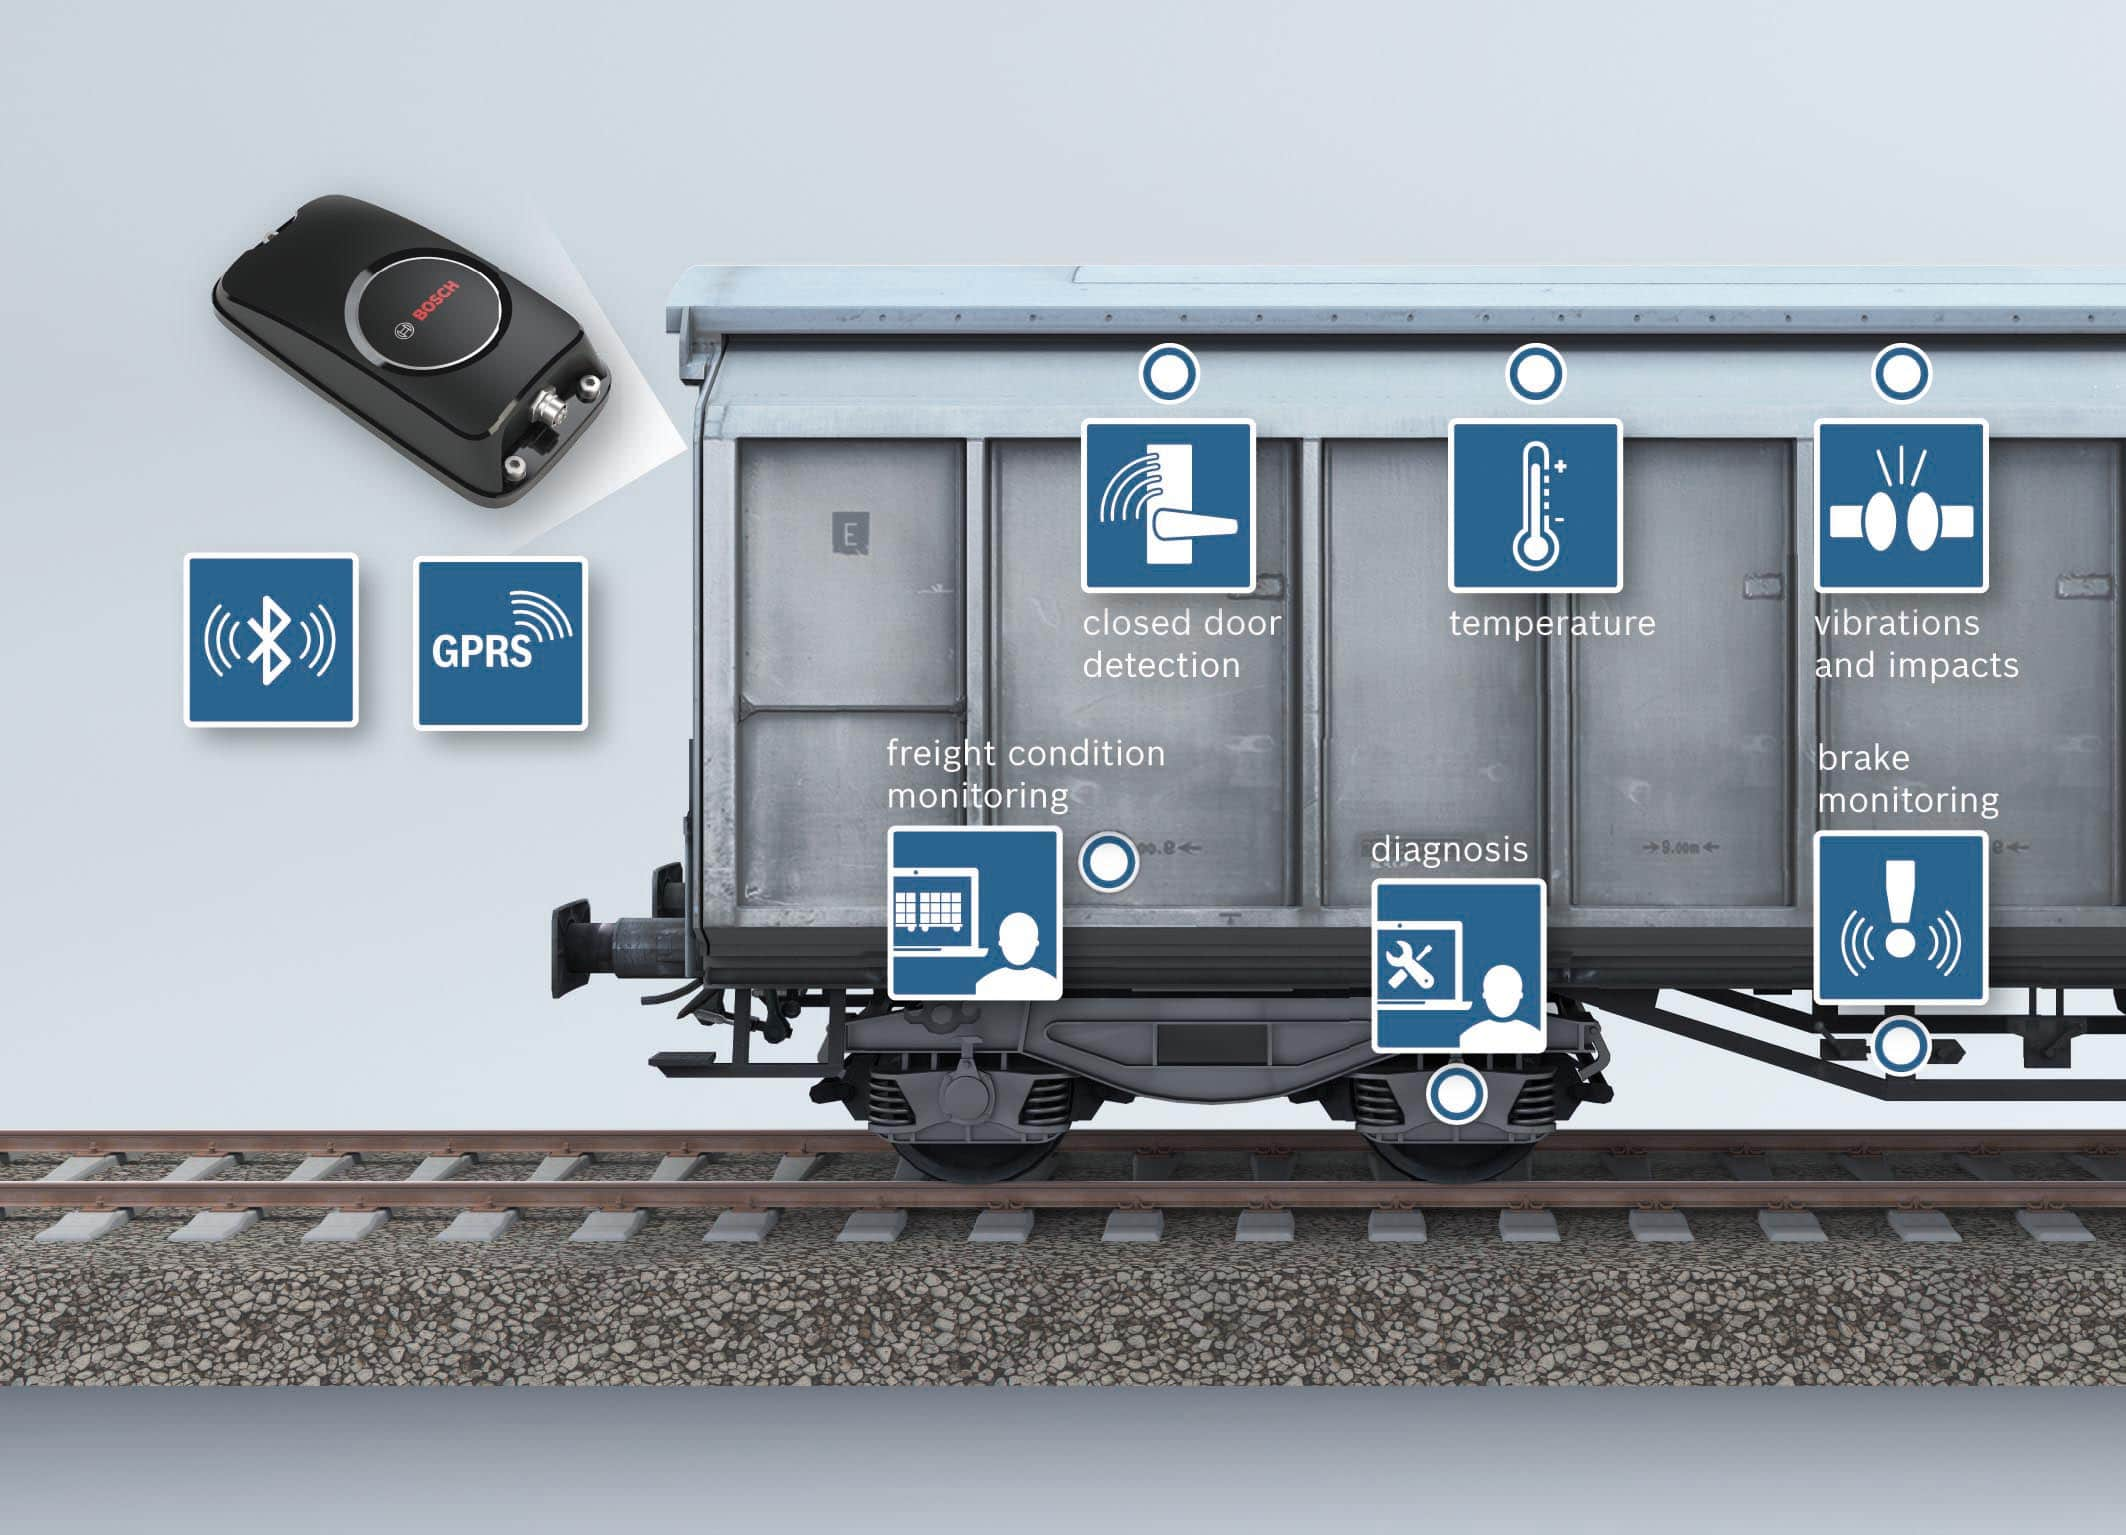 Infographic showing how condition monitoring works in regard to a freight train.